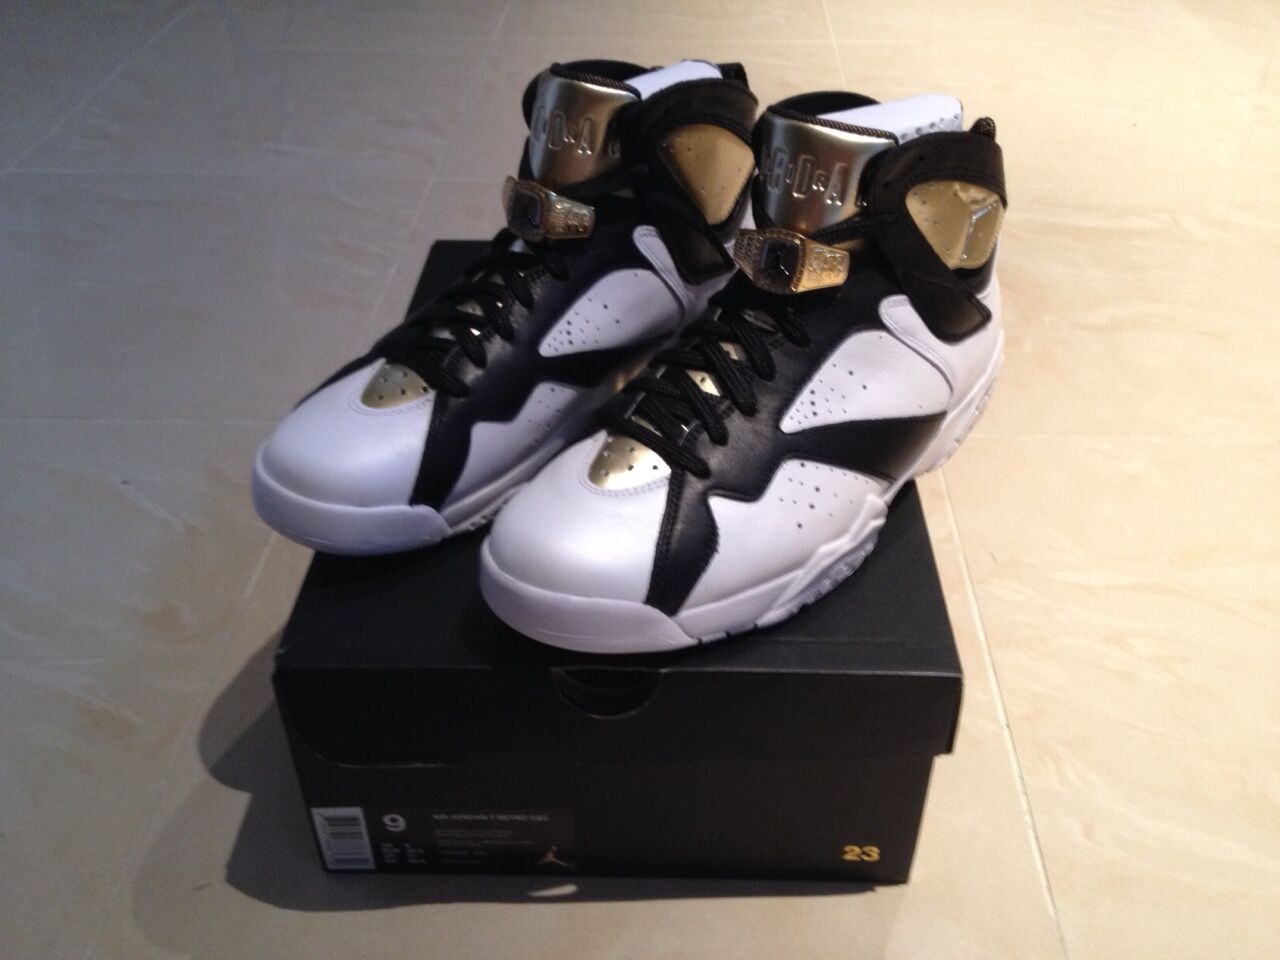 2015 NIKE AIR JORDAN 7 VII CHAMPIONSHIP PACK CHAMPAGNE NEW ALL SIZES 6-12 NEW CHAMPAGNE CIGAR 14c7ed